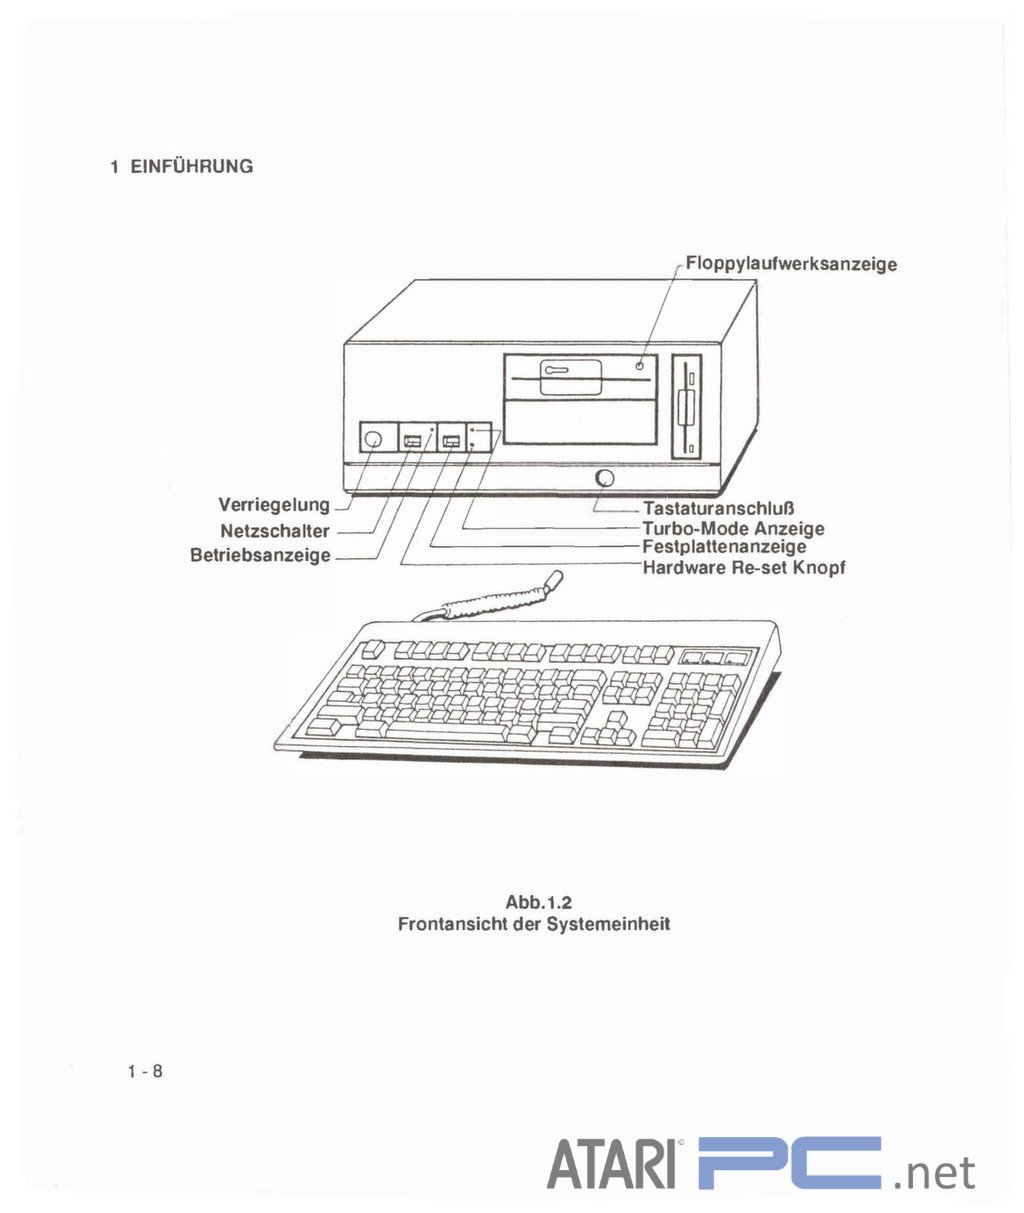 Atari PC4 (Mitac) User Manual – German